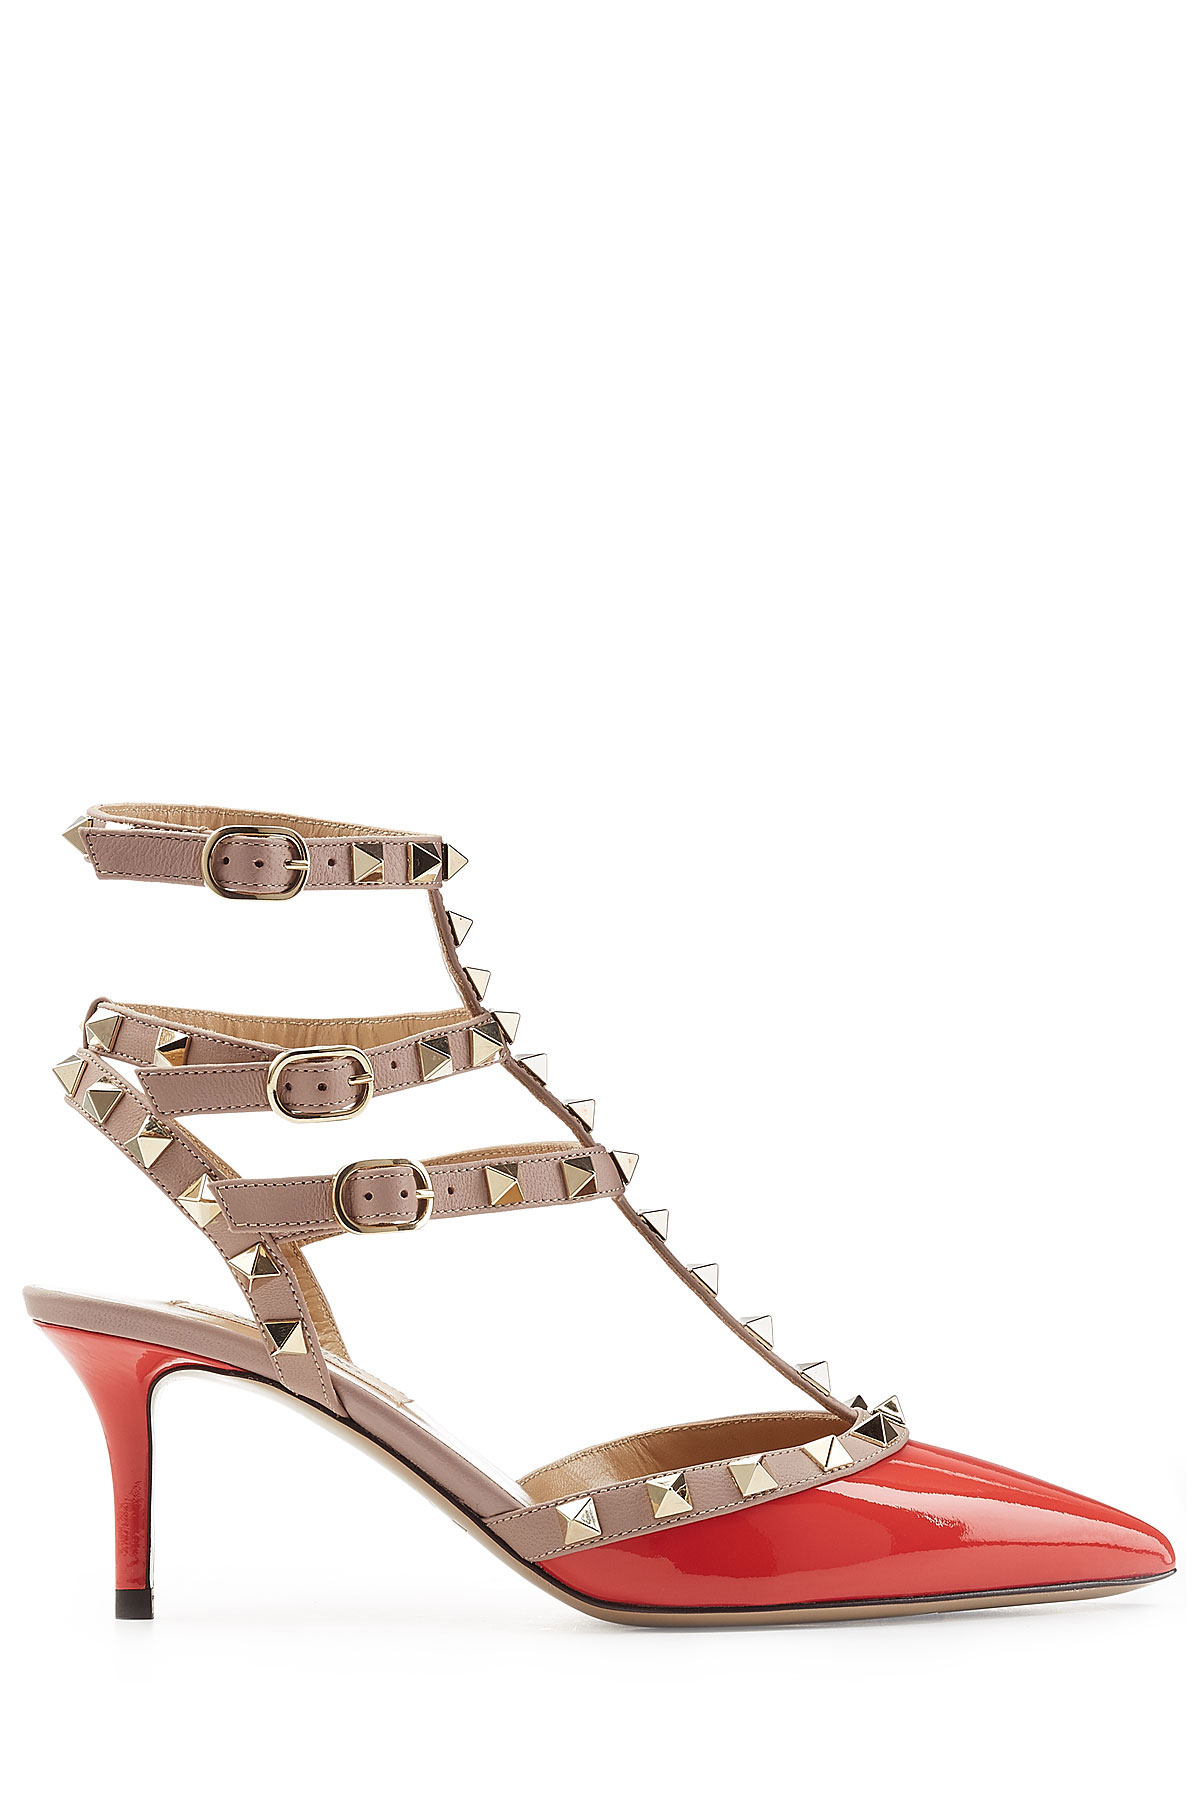 valentino rockstud patent leather kitten heel pumps red in red lyst. Black Bedroom Furniture Sets. Home Design Ideas